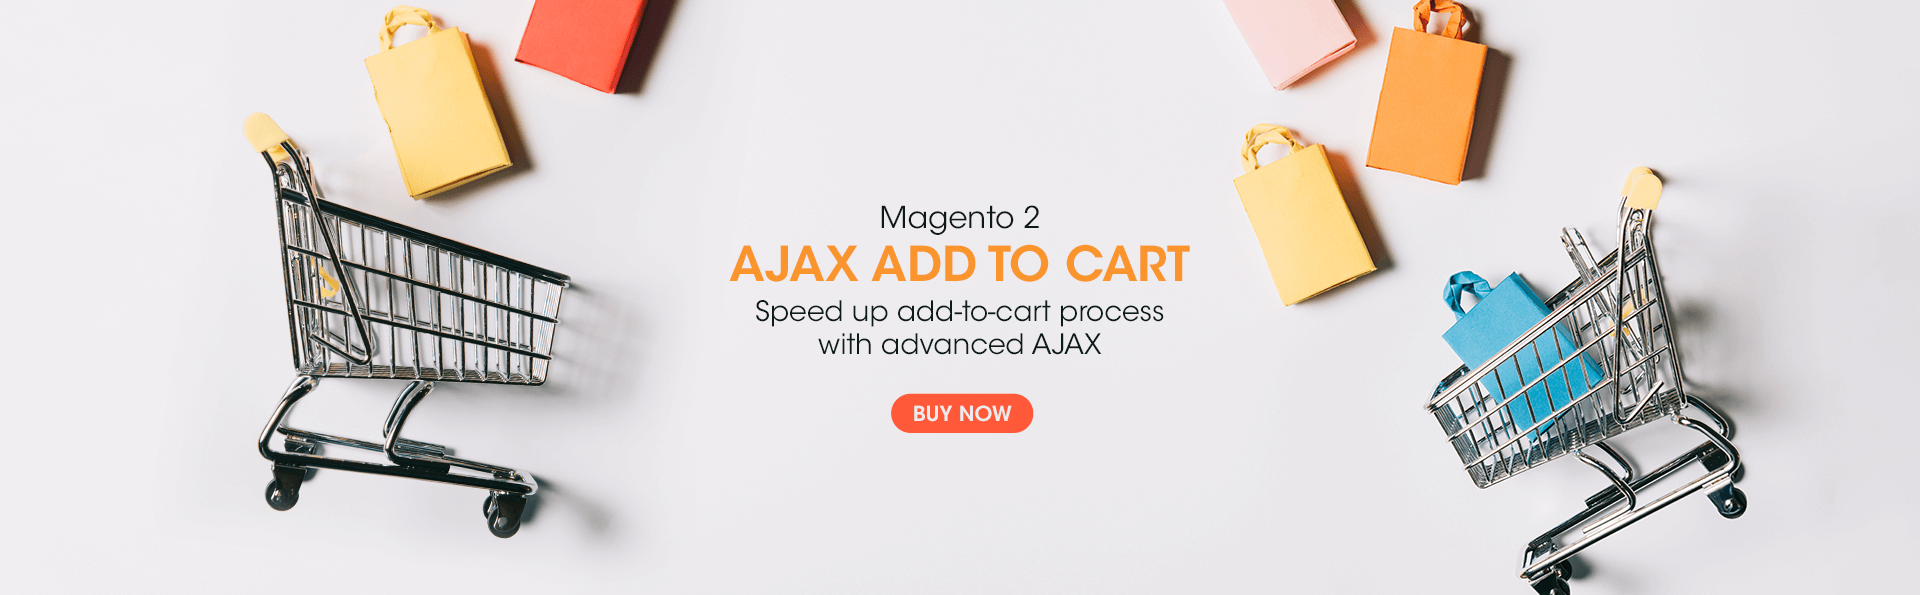 magento 2 ajax add to cart